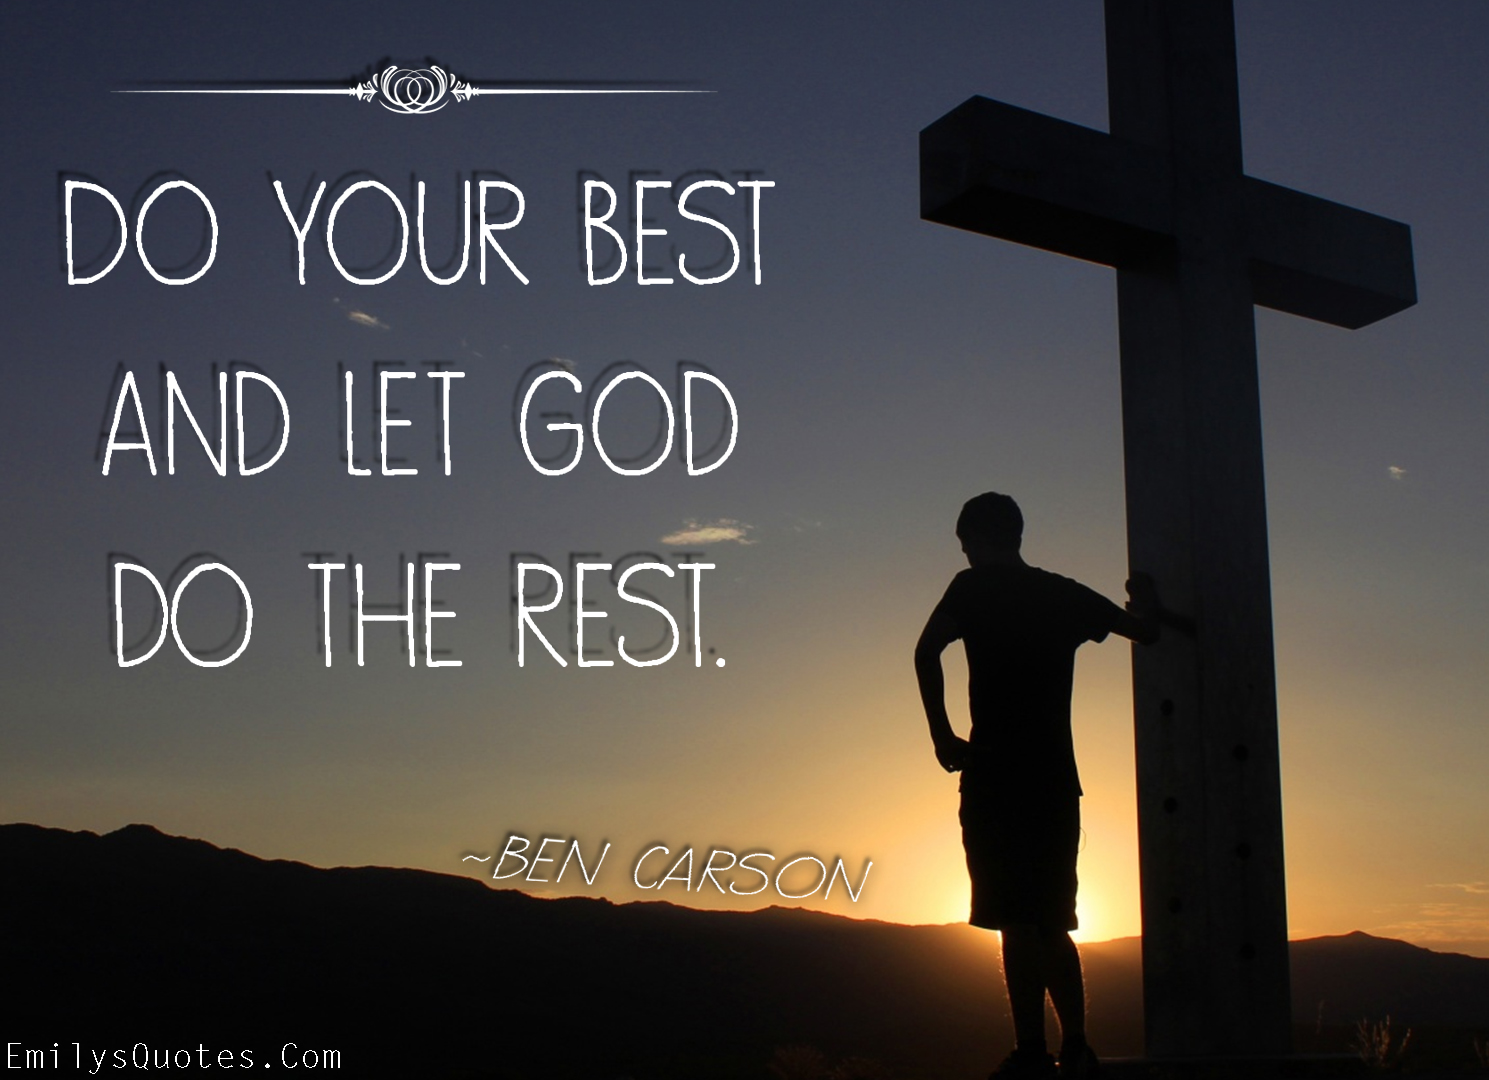 Inspirational God Quotes Fascinating Do Your Best And Let God Do The Rest  Popular Inspirational